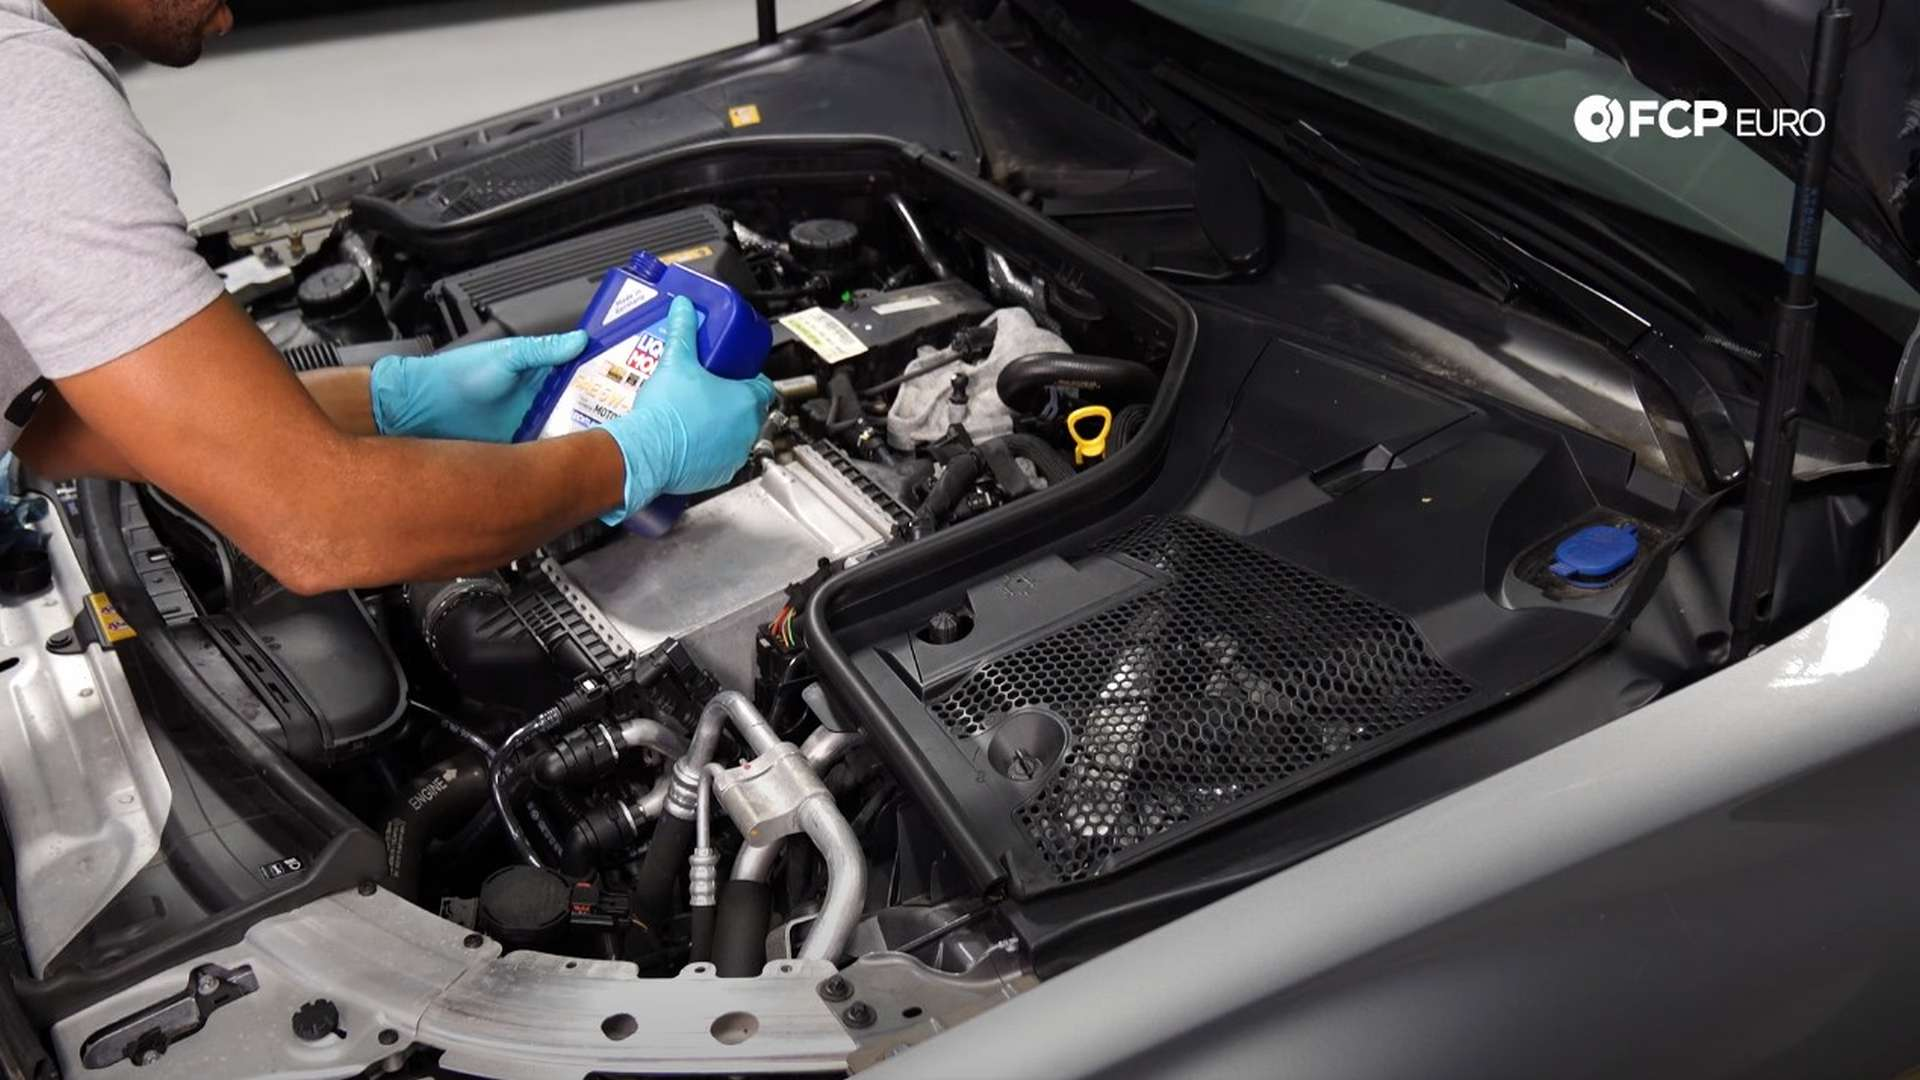 How To Change The Oil On a Mercedes C300 (M274 Engine)